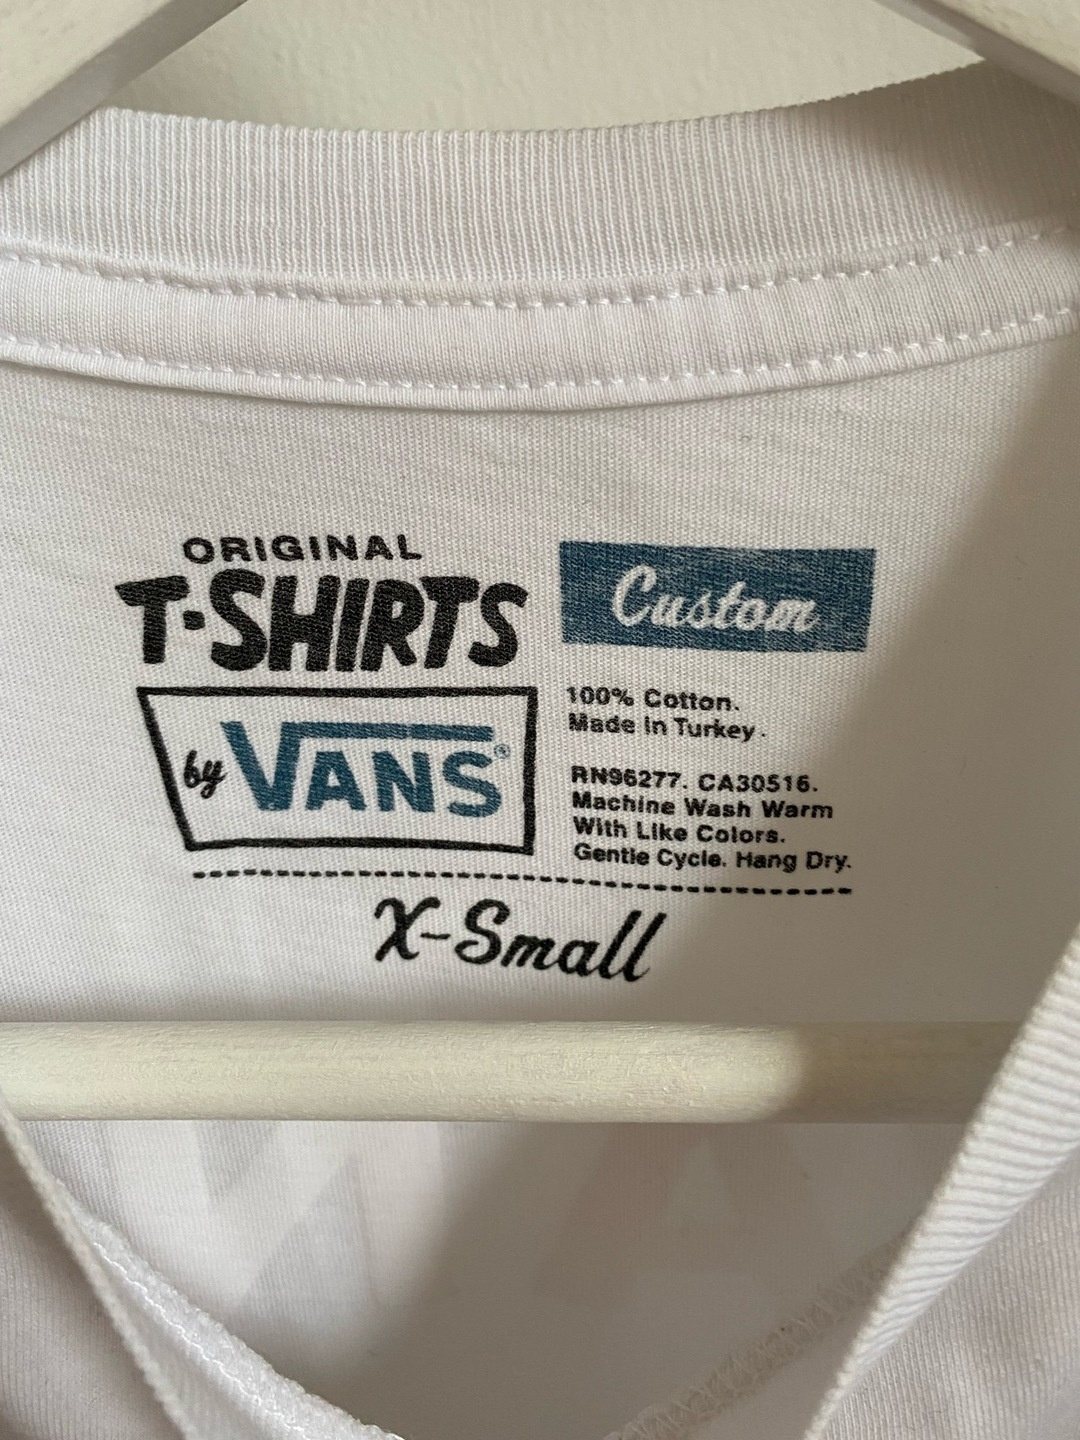 Damers toppe og t-shirts - VANS photo 3